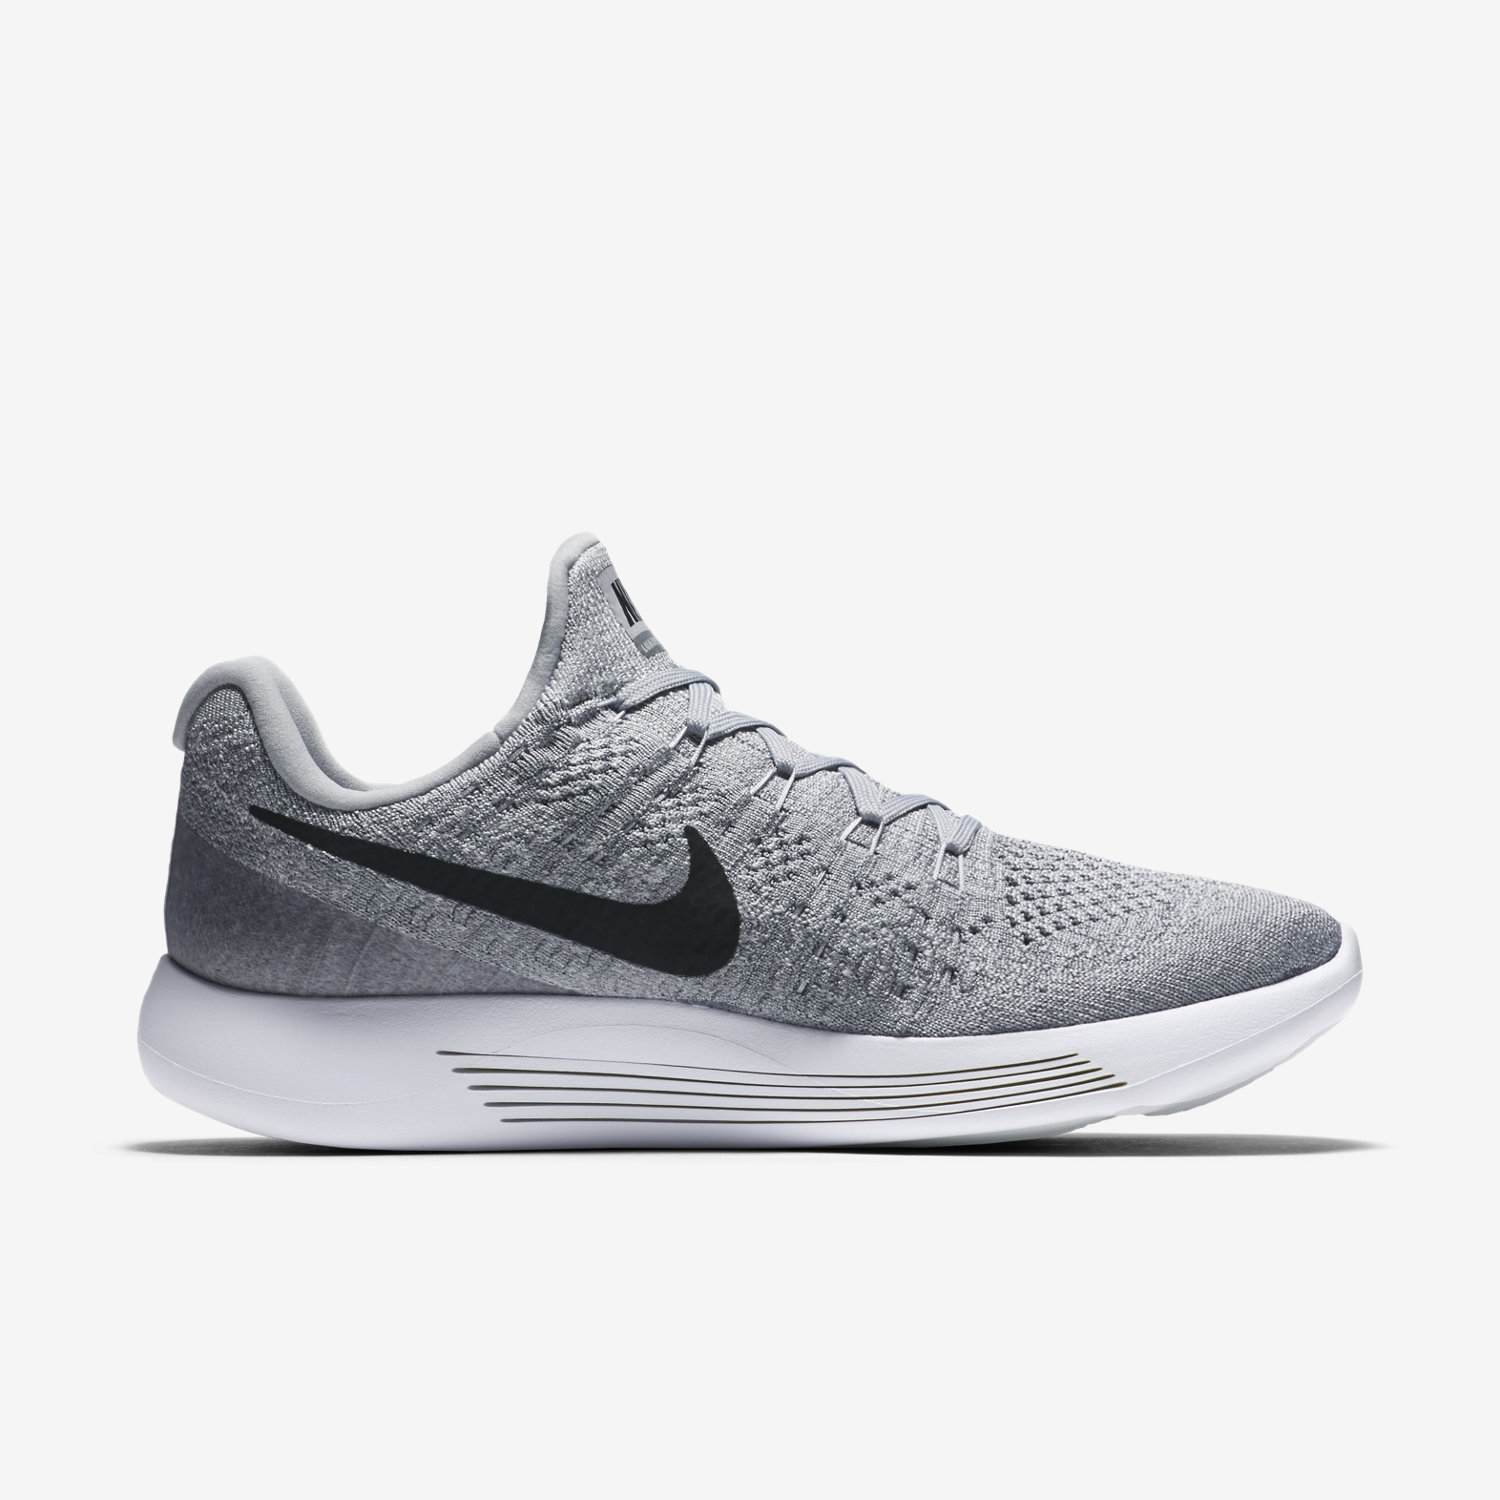 nike lunarepic low flyknit womens yellow silver